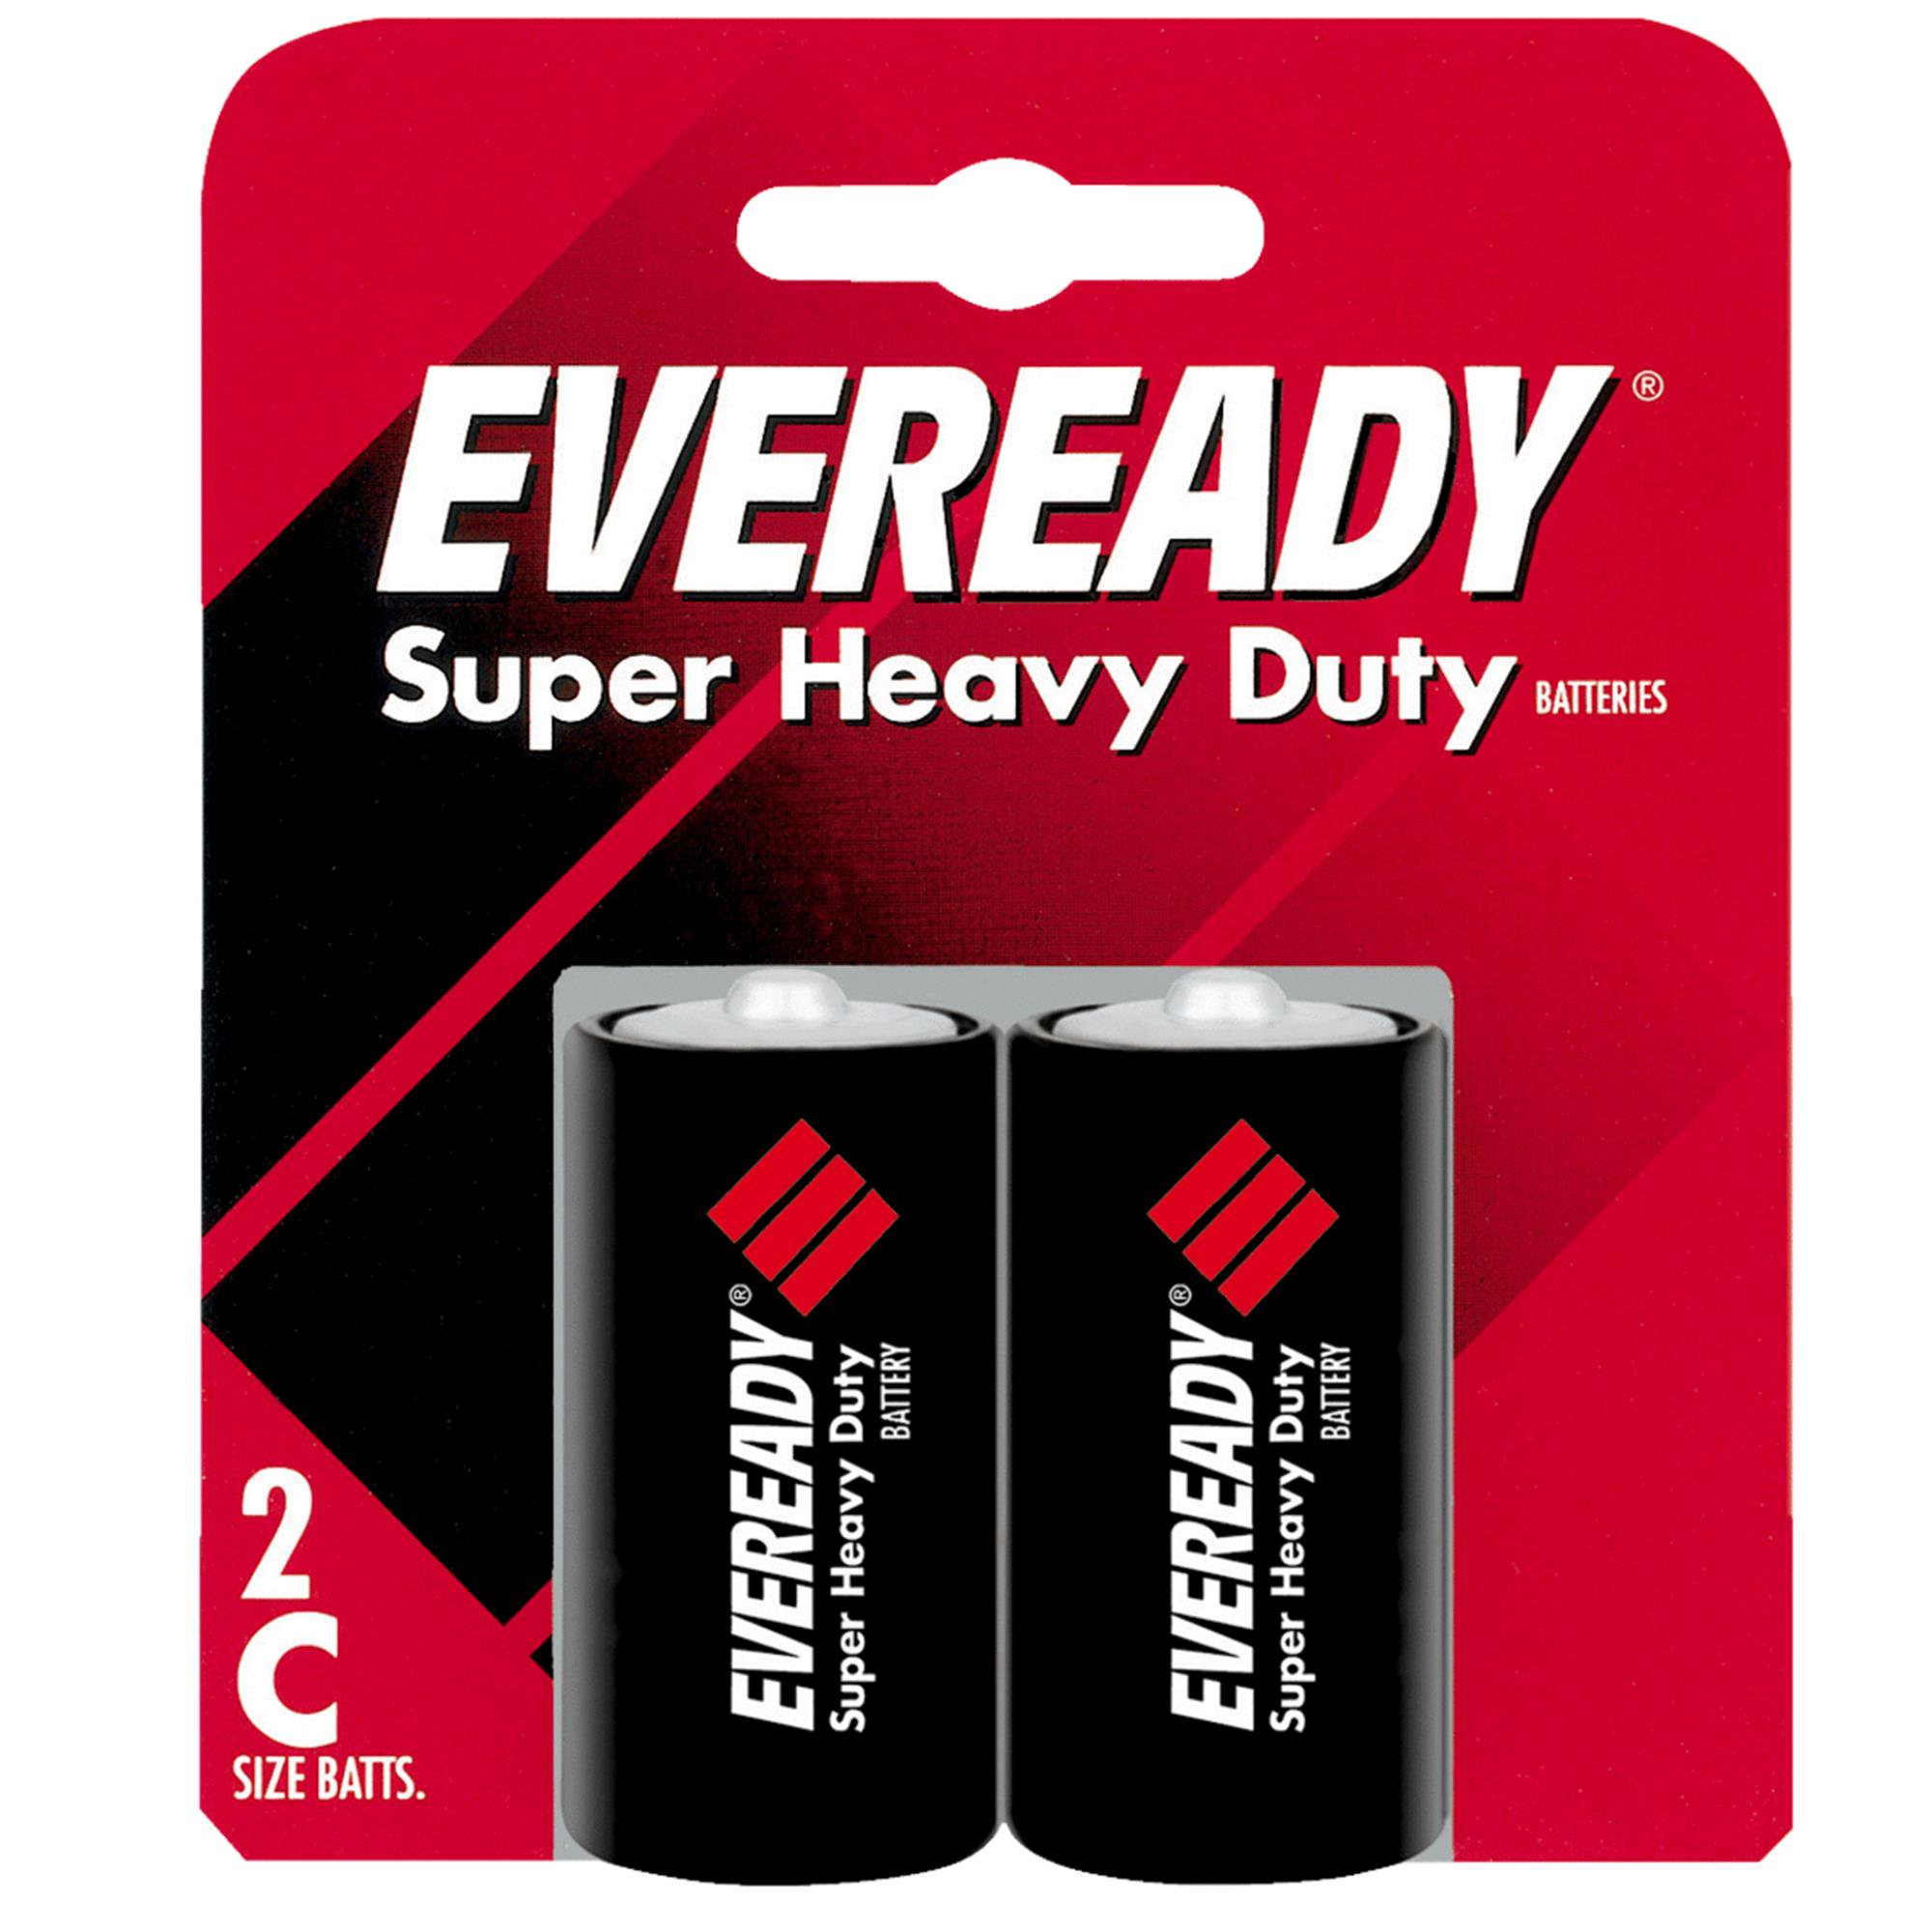 Eveready Super Heavy Duty C Carbon Zinc Battery